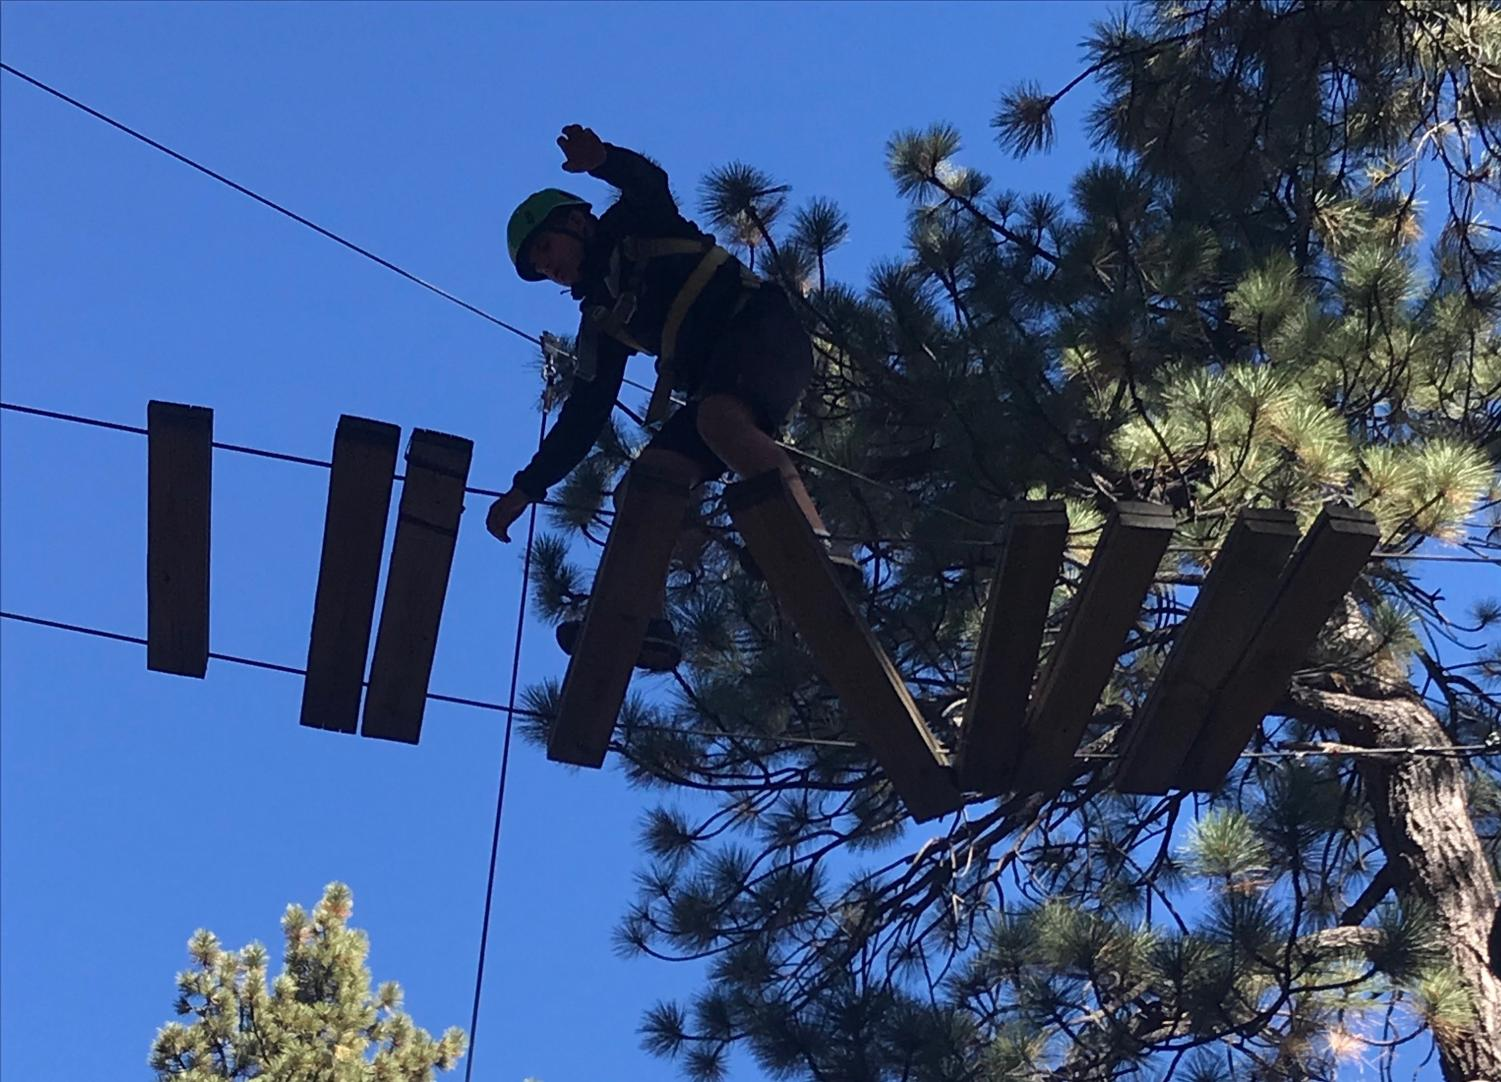 Adam Hayek walks across a suspended ladder on the high ropes course